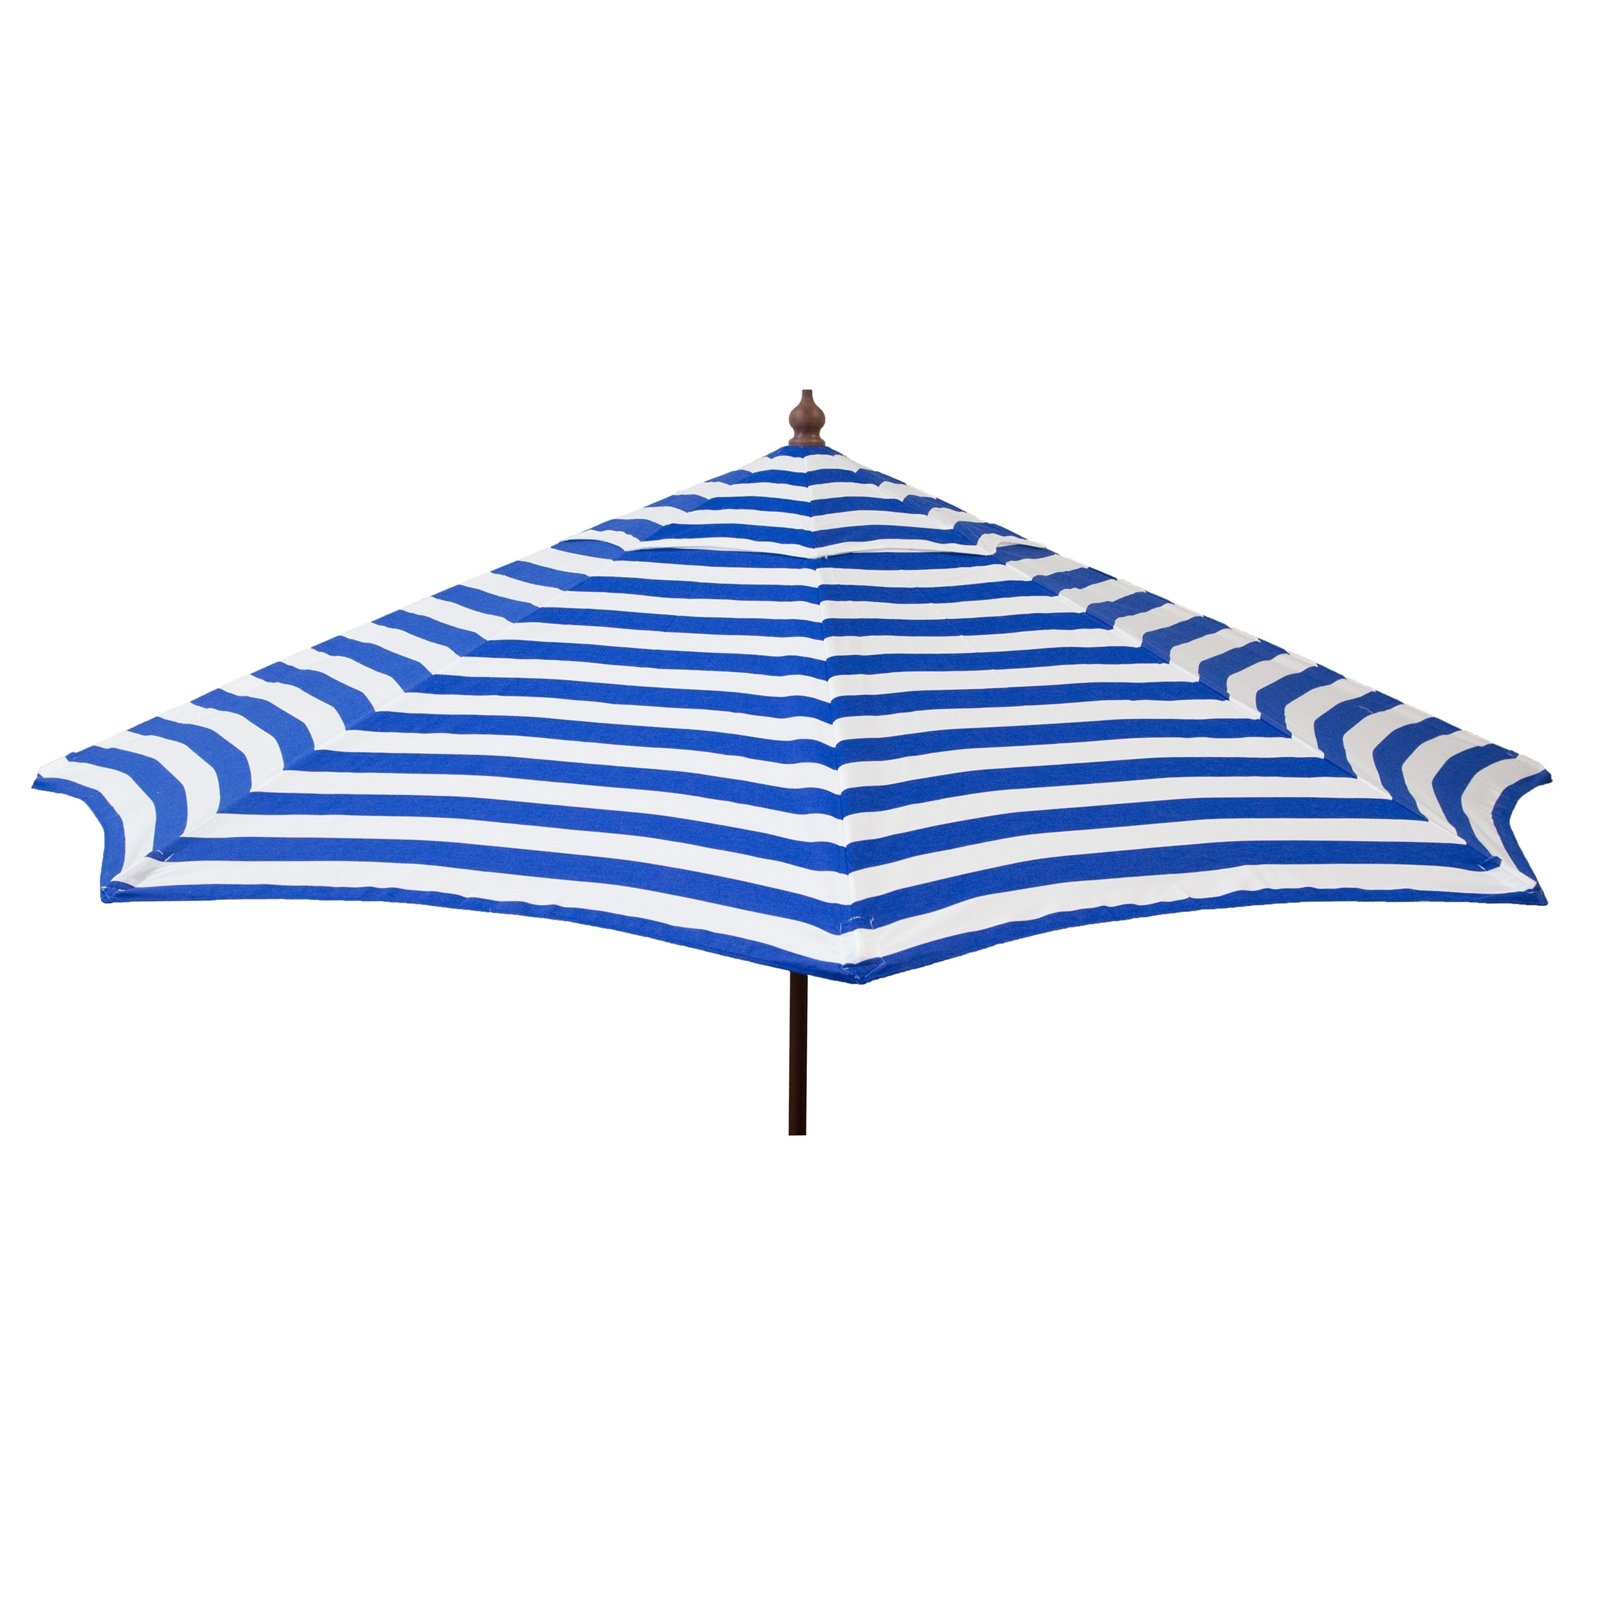 Destination Gear 9ft Italian Patio Umbrella - Blue and White